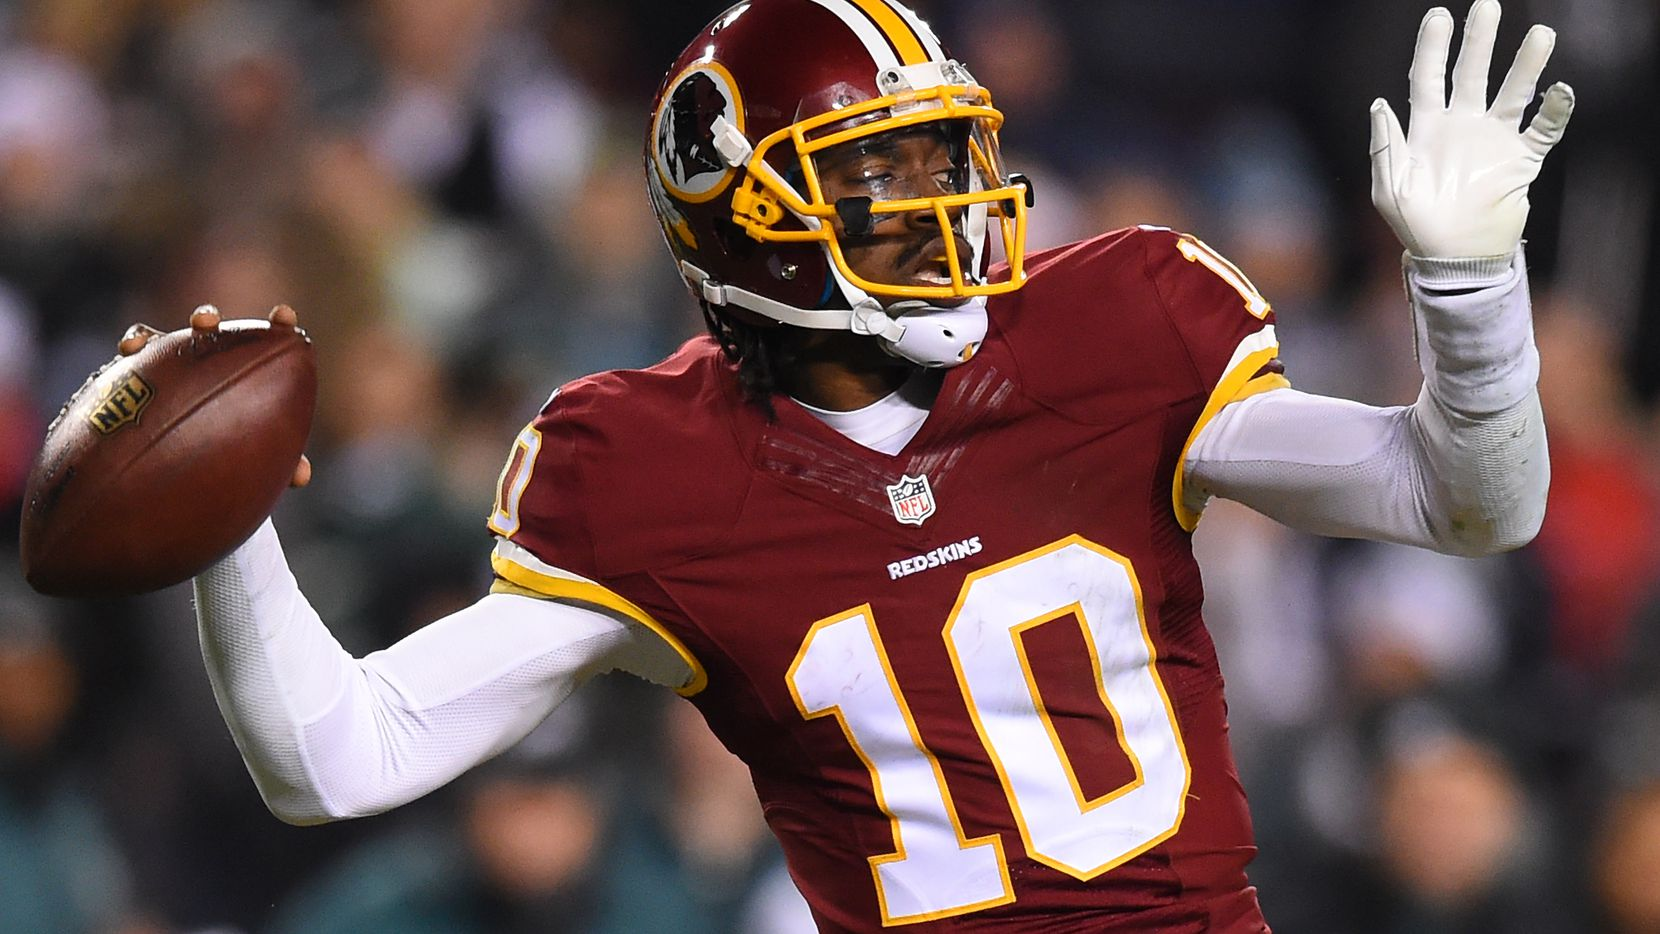 LANDOVER, MD - DECEMBER 20: Quarterback Robert Griffin III #10 of the Washington Redskins throws a pass in the second half against the Philadelphia Eagles at FedExField on December 20, 2014 in Landover, Maryland. The Washington Redskins won, 27-24. (Photo by Patrick Smith/Getty Images)